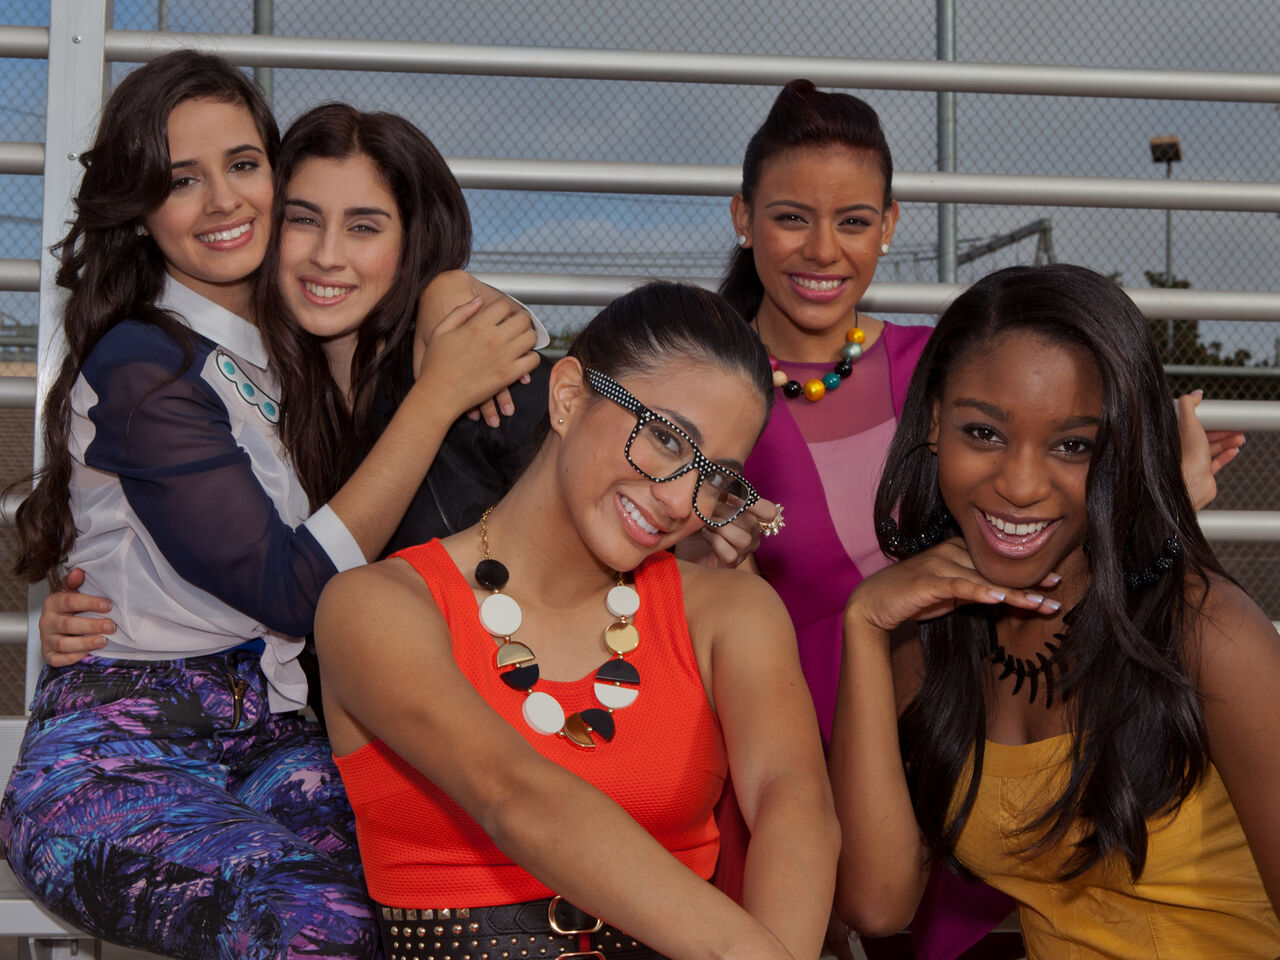 Full resolution      1 600   215  1 200 pixels  file size  446 KB  MIME    Fifth Harmony Ages And Birthdays